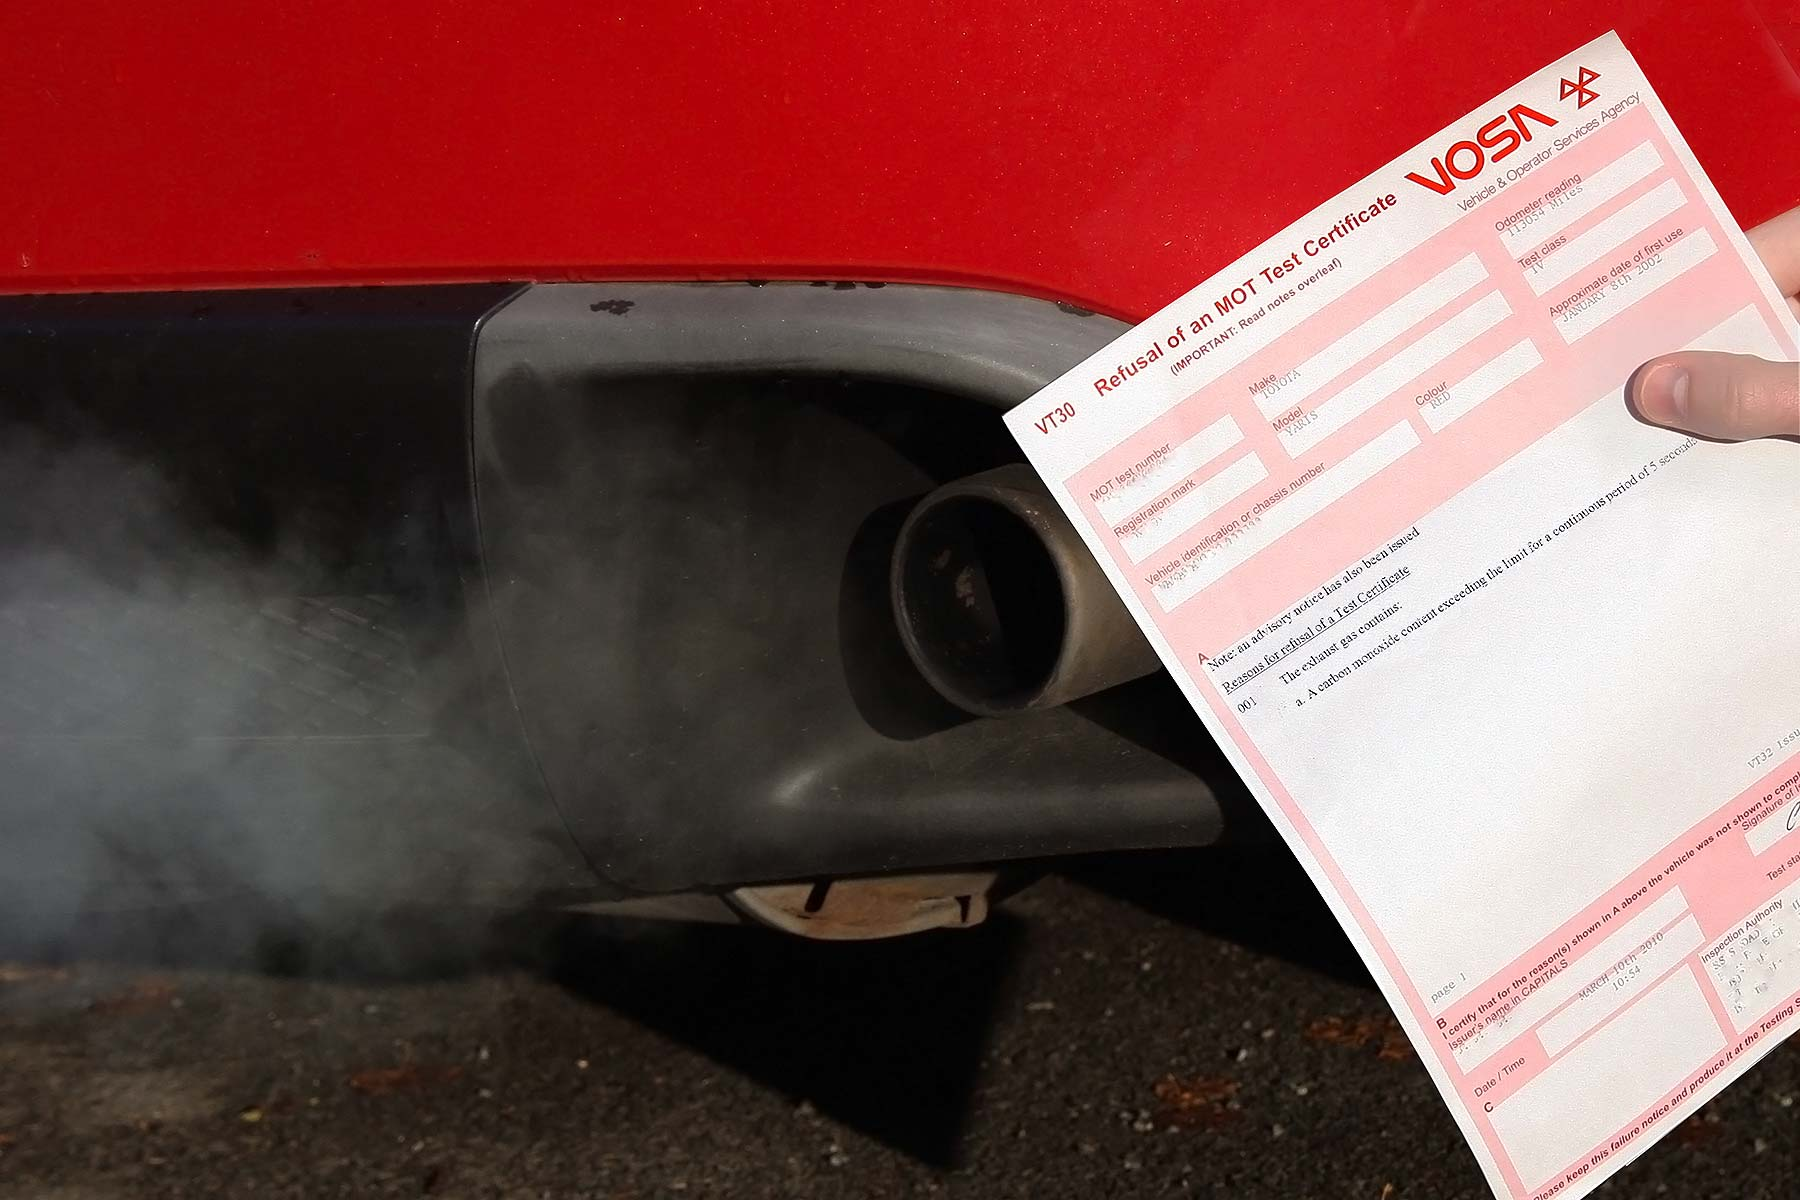 Motorists could be hit with fines following MoT meltdown